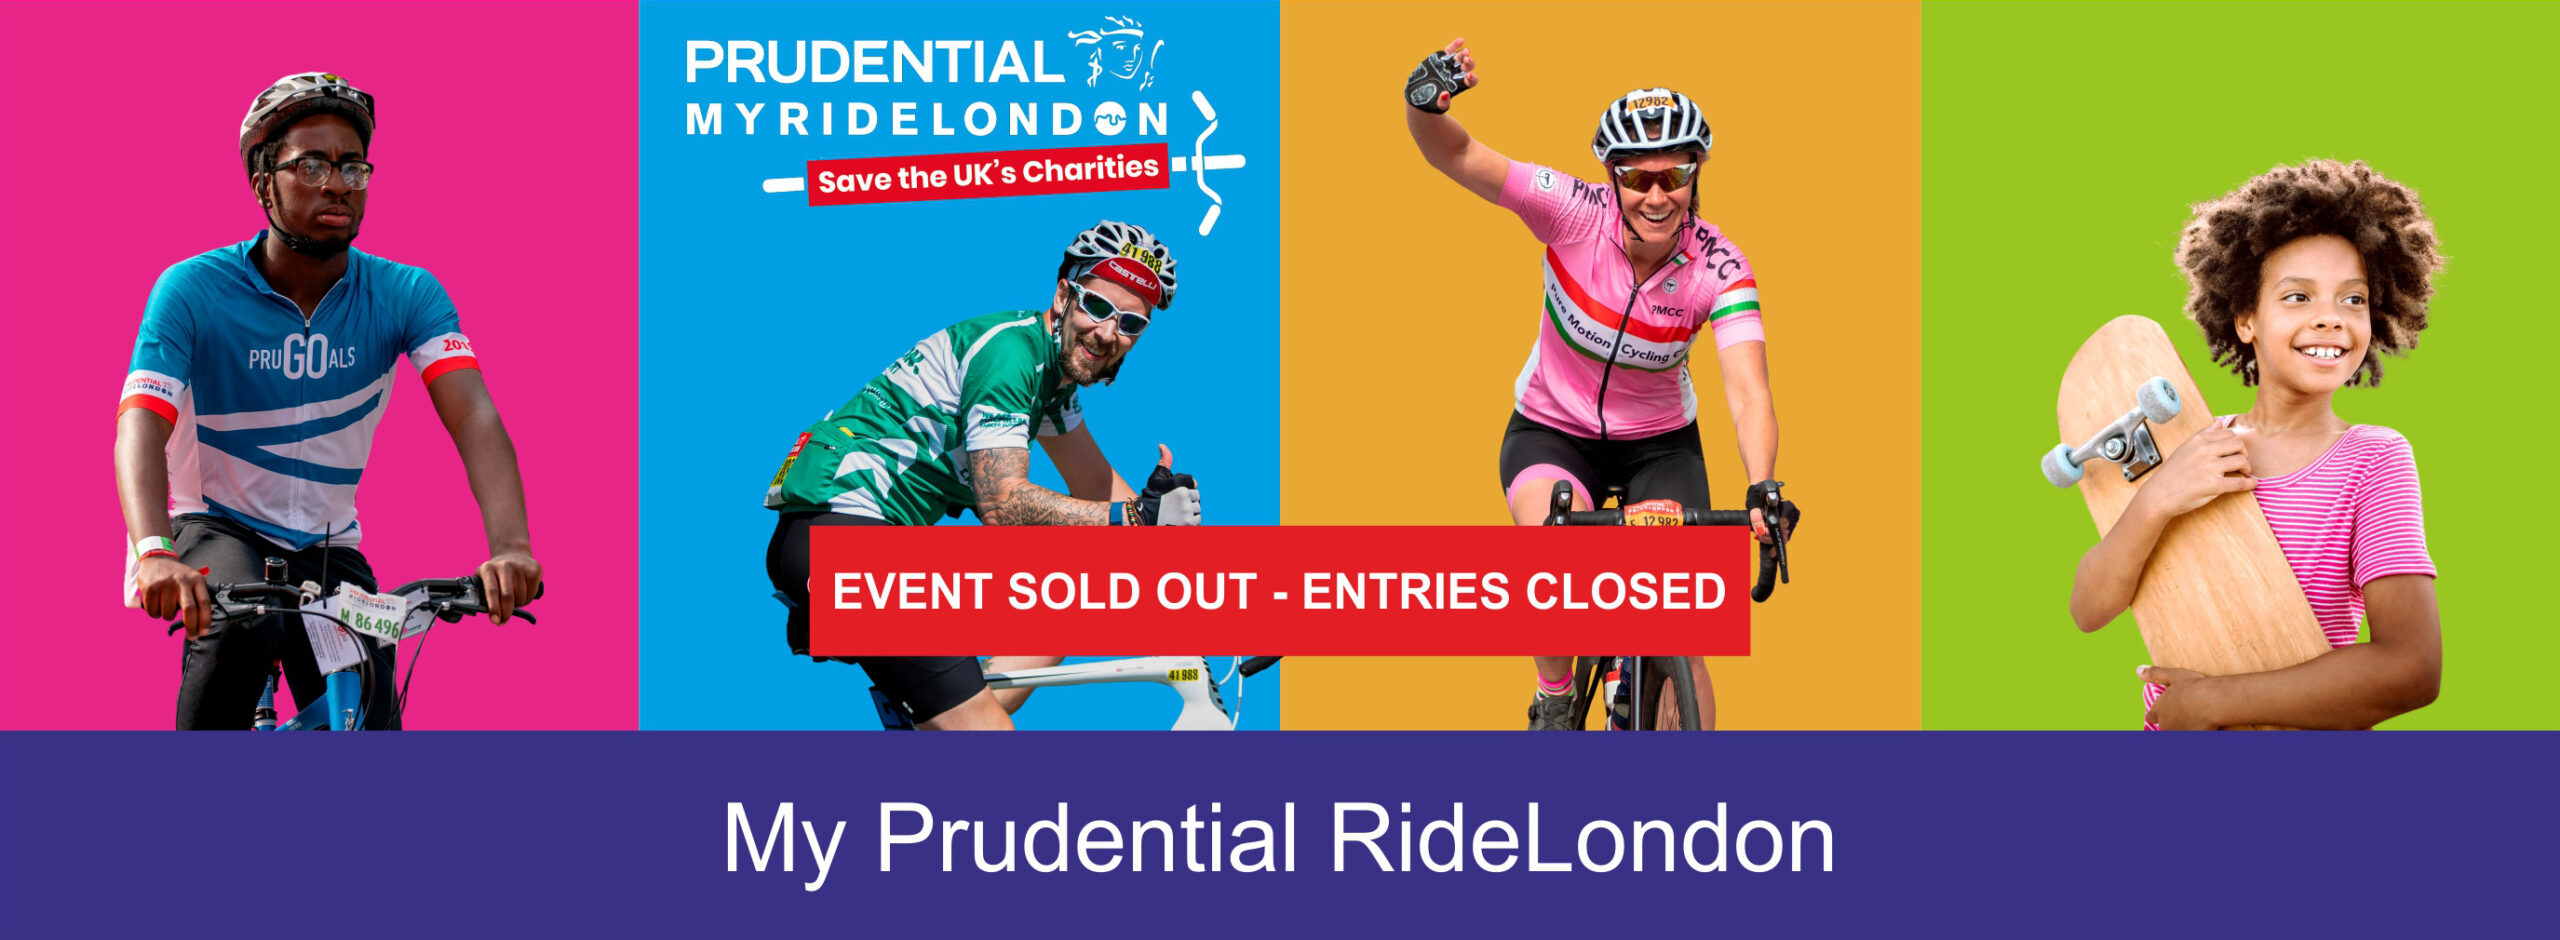 Virtual Ride London - Applications closed